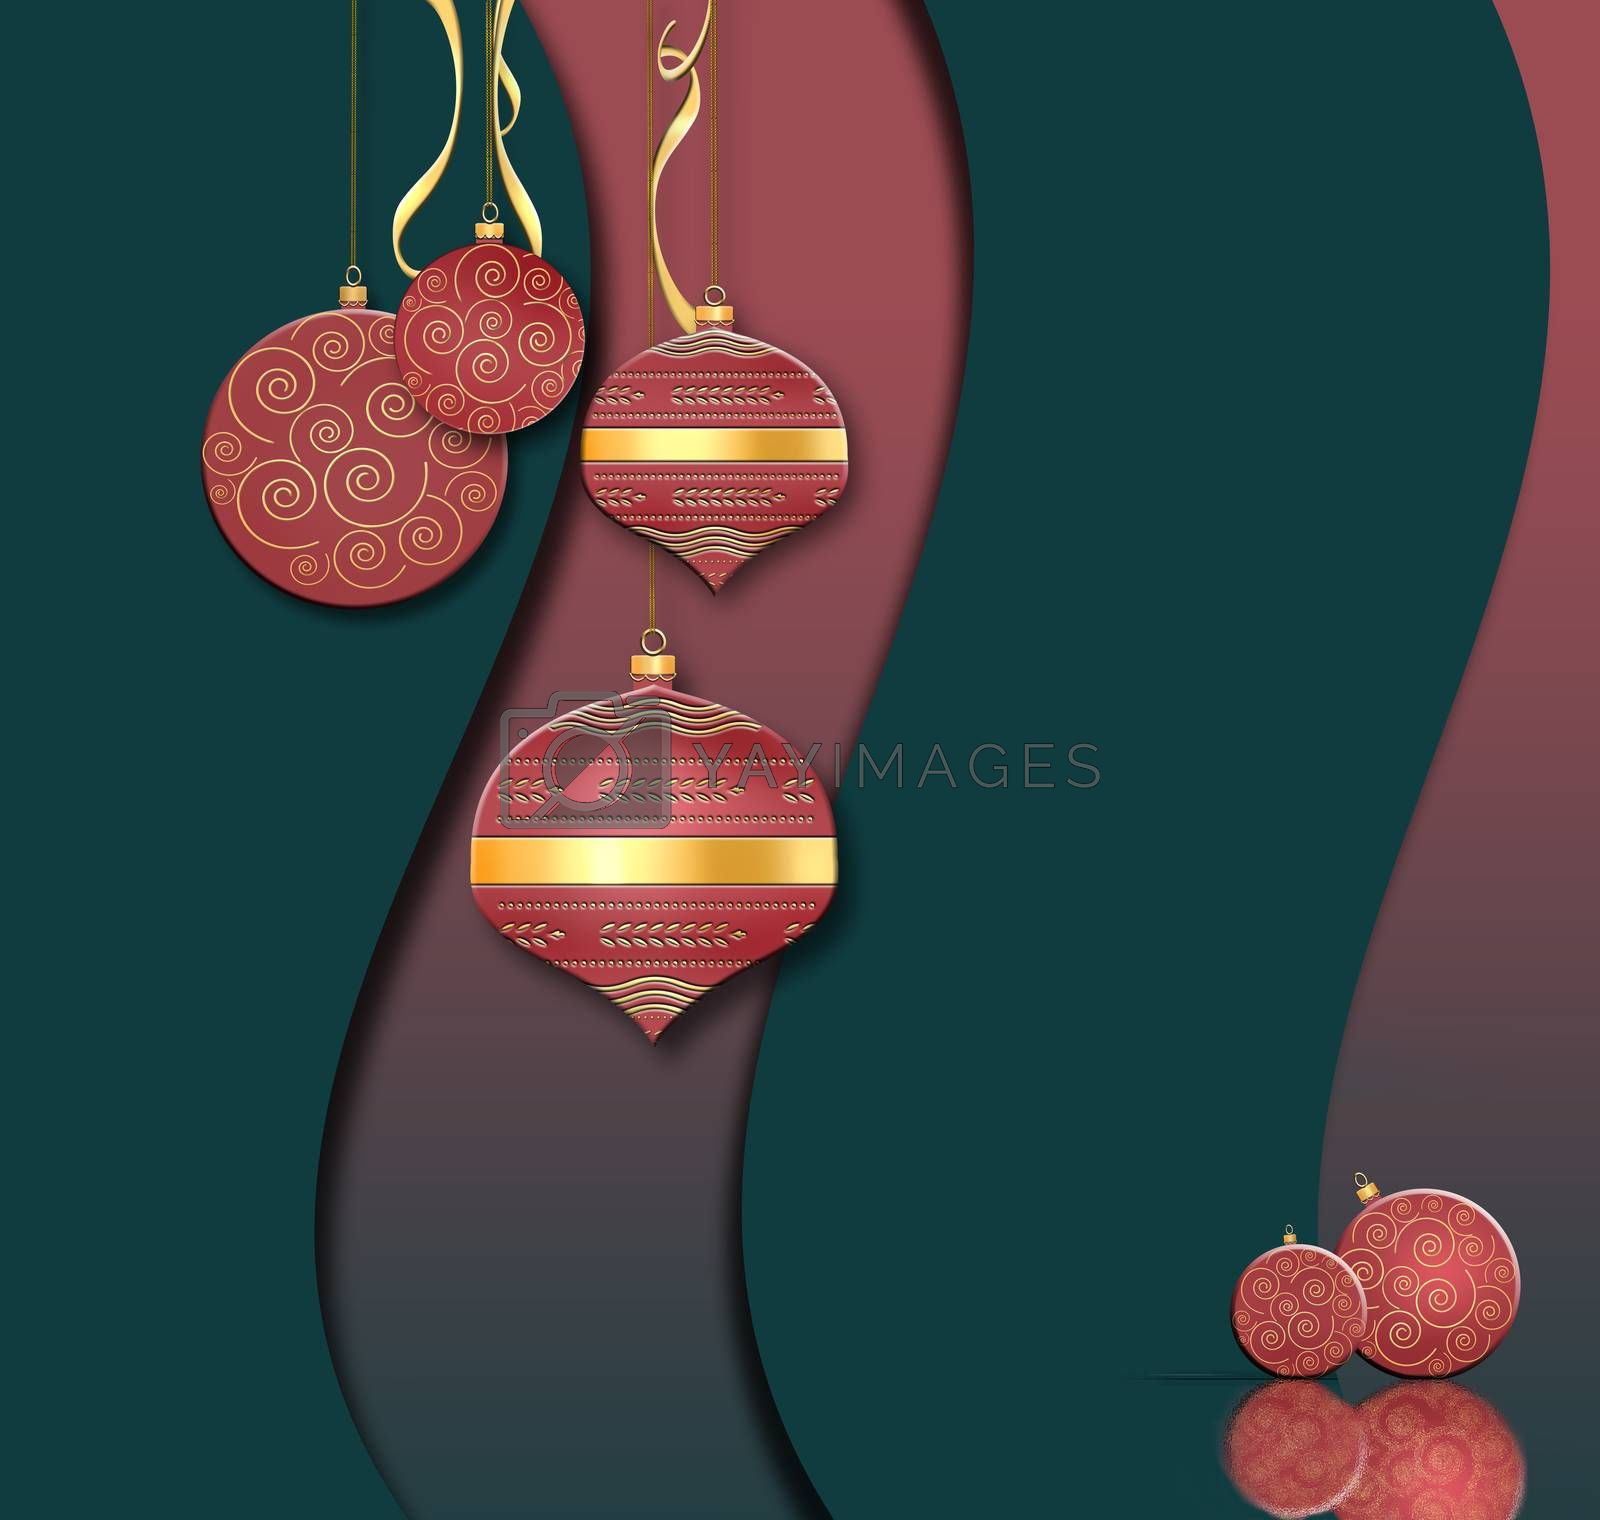 Luxury Christmas and 2021 New Year balls background in Chinese style. Hanging red baubles with gold decor on black green red background. Text Happy New year. 3D illustration